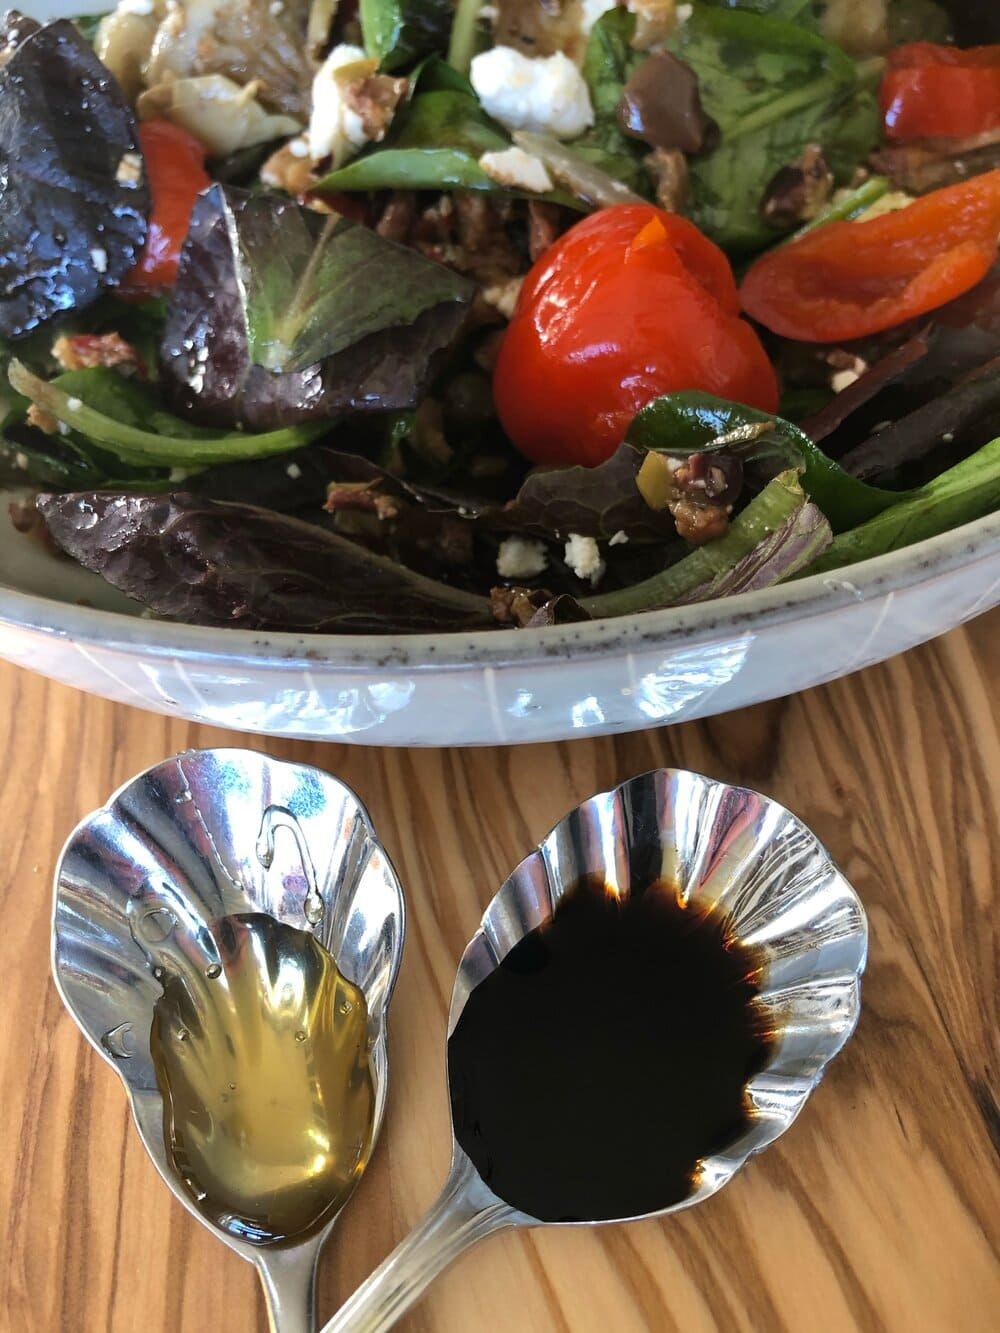 Missouri Girl Mediterranean Salad with Honey Dijon Balsamic Vinaigrette. This salad uses light, healthy, and fresh ingredients that is the perfect lunch or side salad. Missouri girl blog. #Mediterraneandiet #Mediterraneansalad #salad #newyearsresolutions #healthyeating #glutenfree #Missourigirl